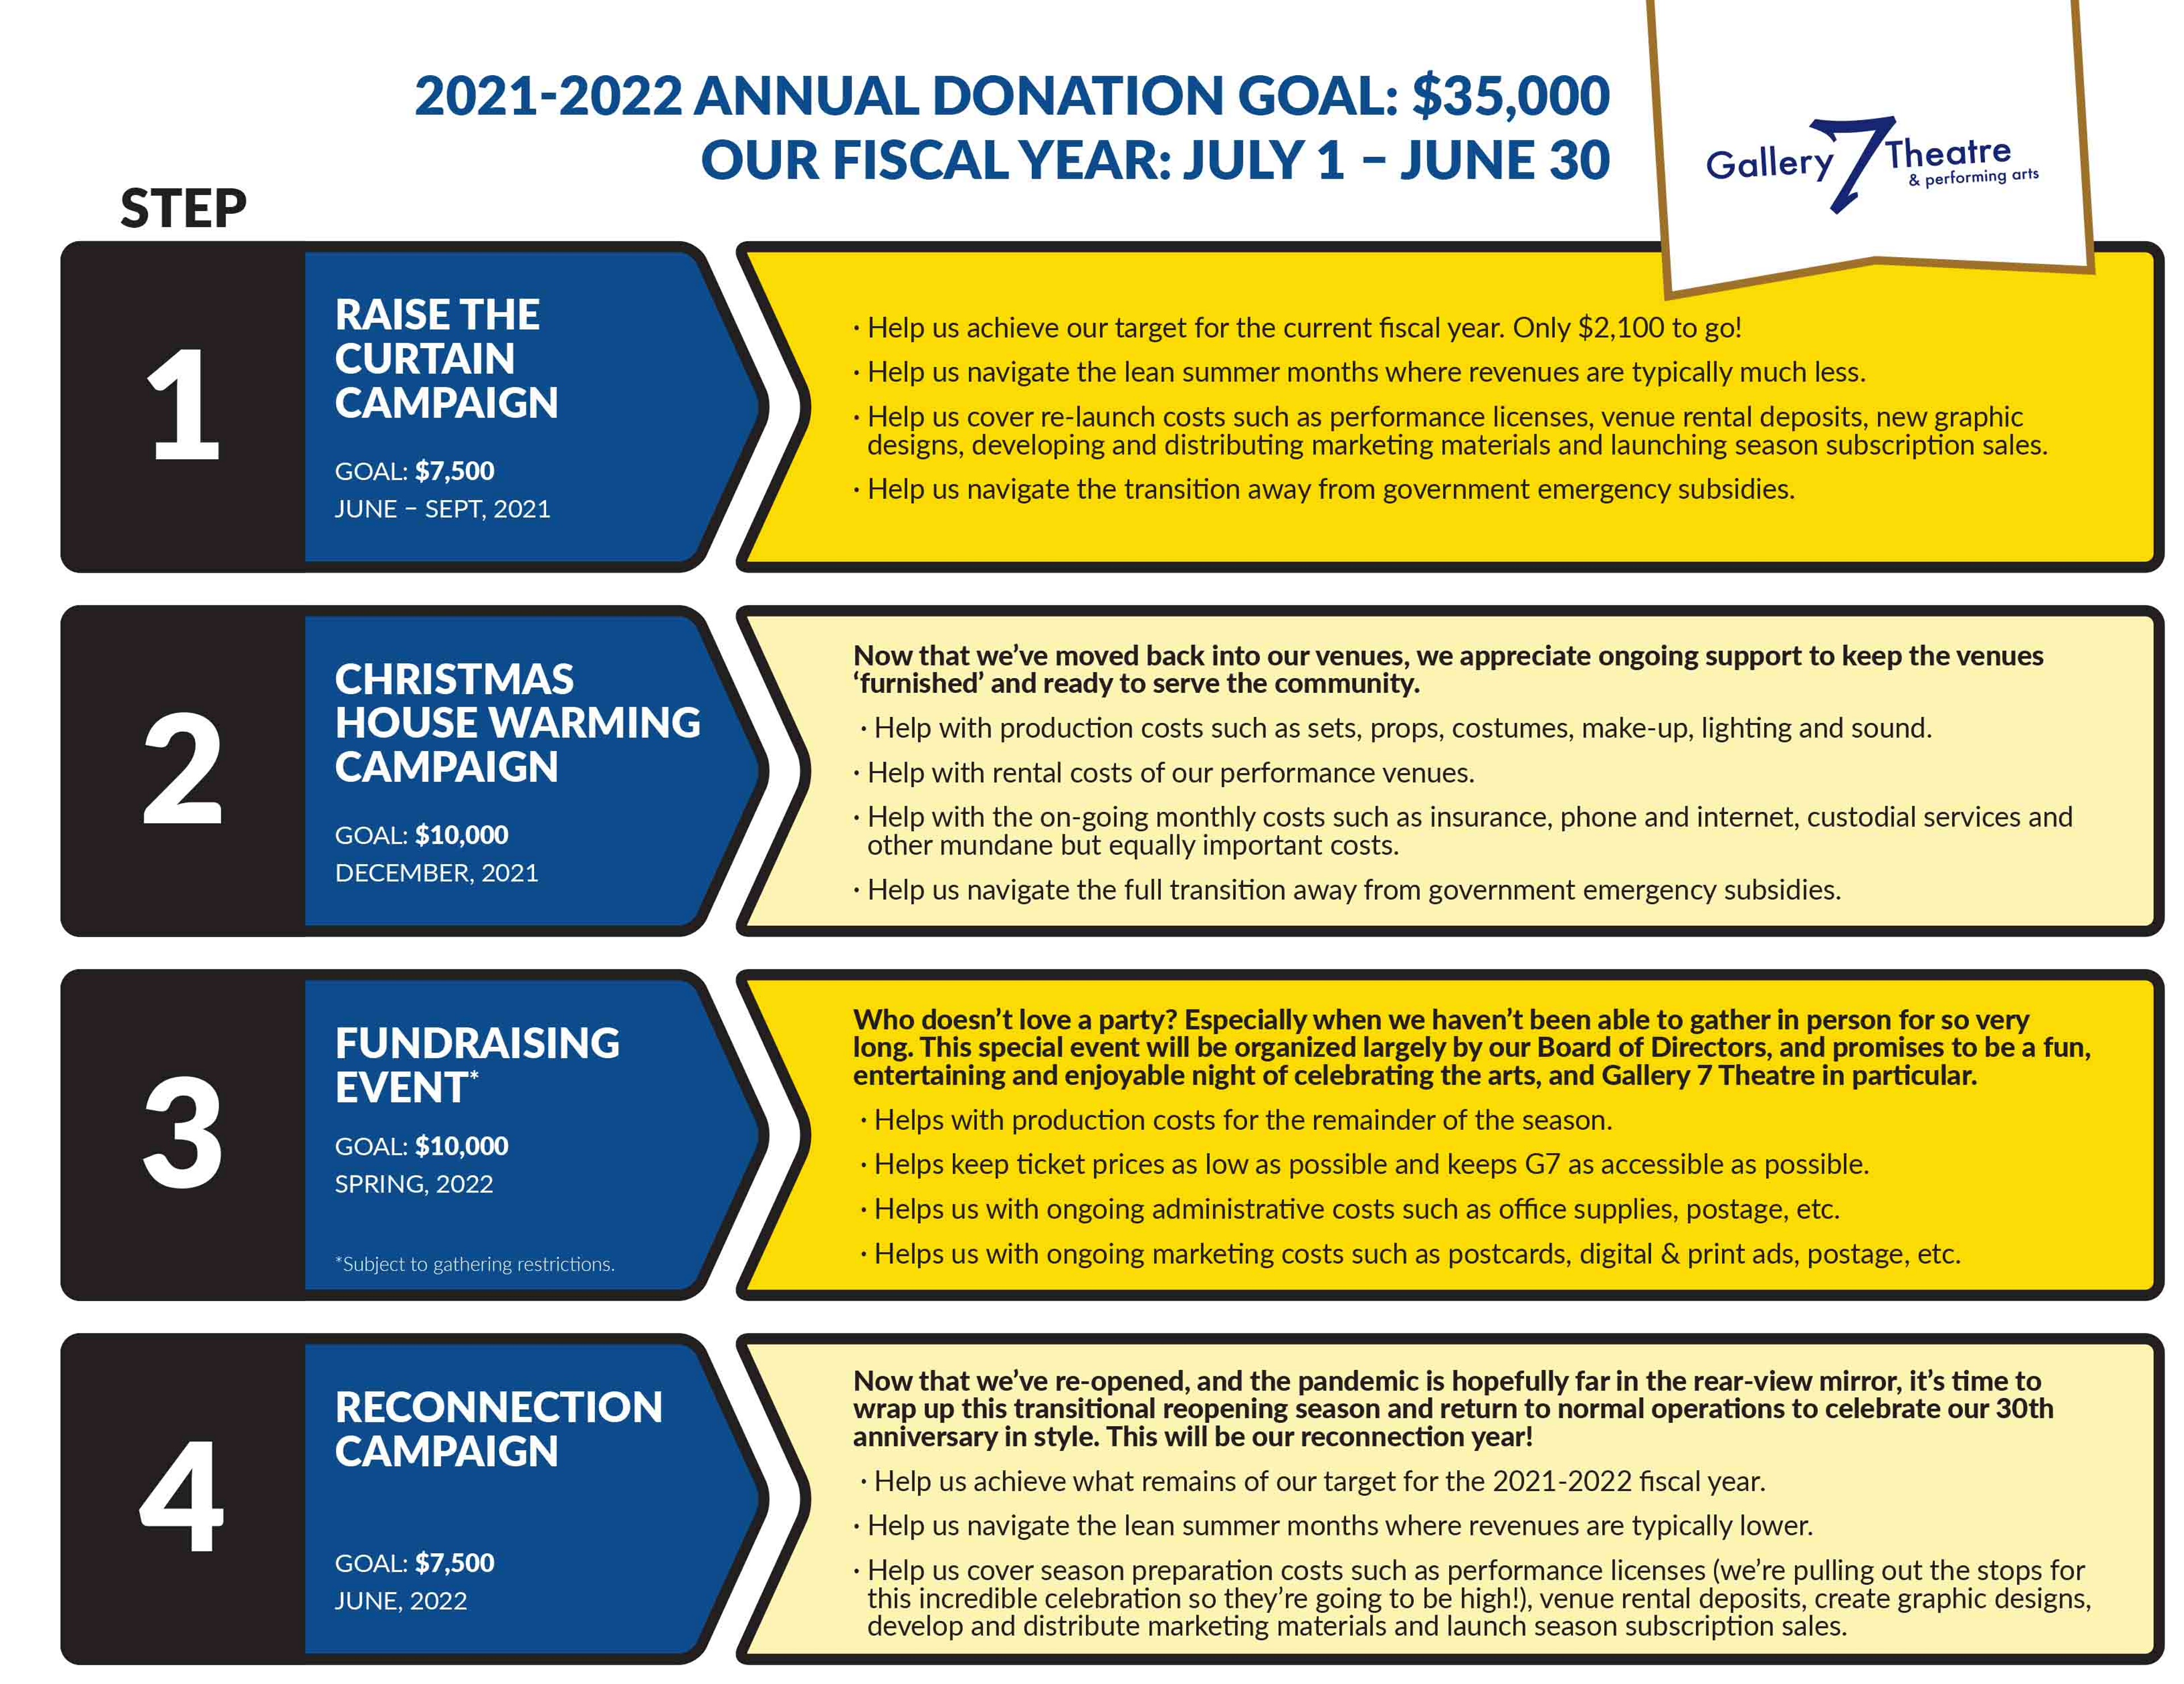 Annual Donation goal graphic which breaks down campaigns throughout the year. For a transcription of this graphic, email info@gallery7theatre.com.